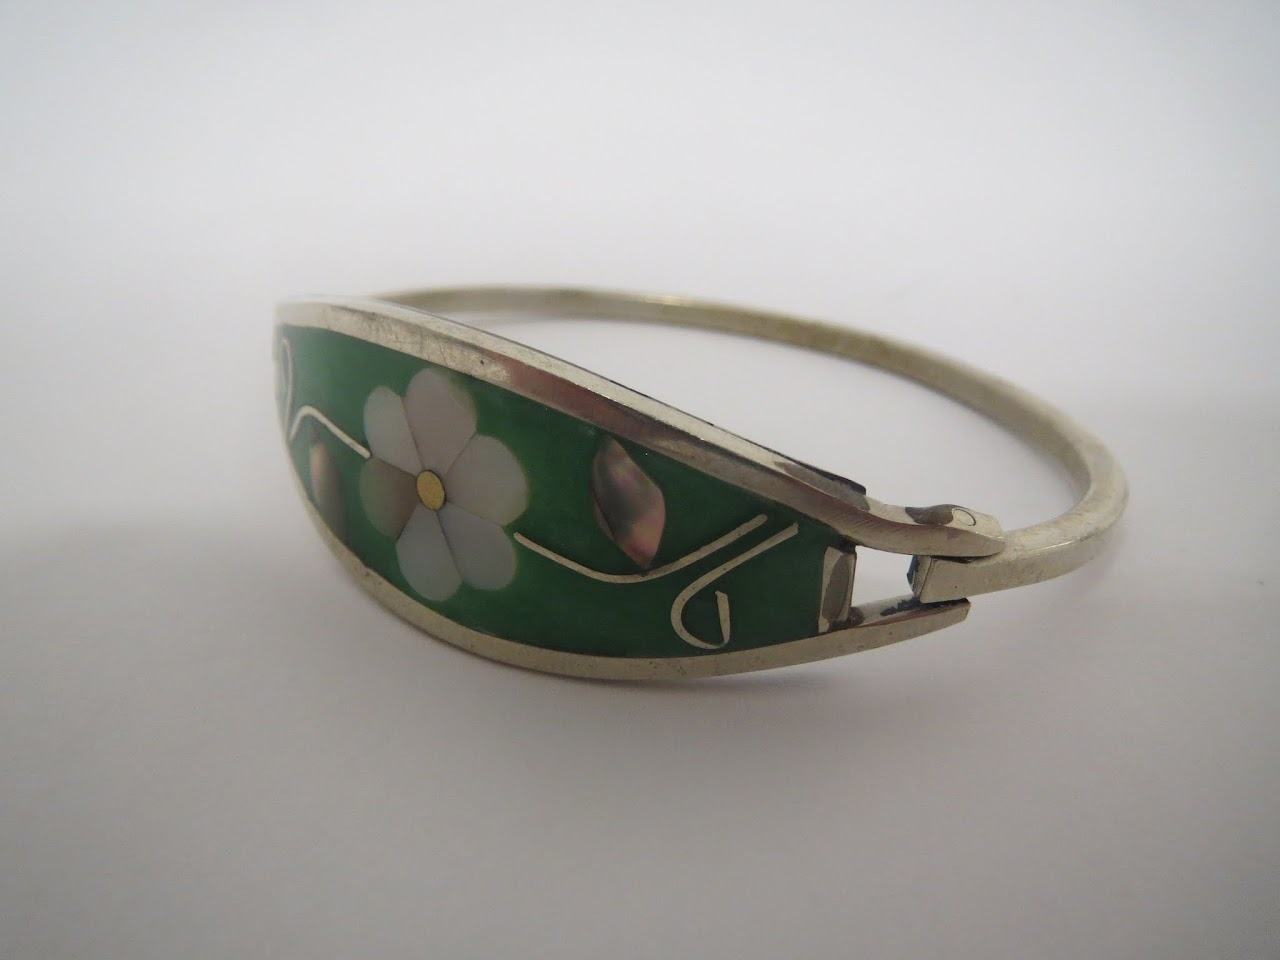 Silver & Enamel Mexican Bangle